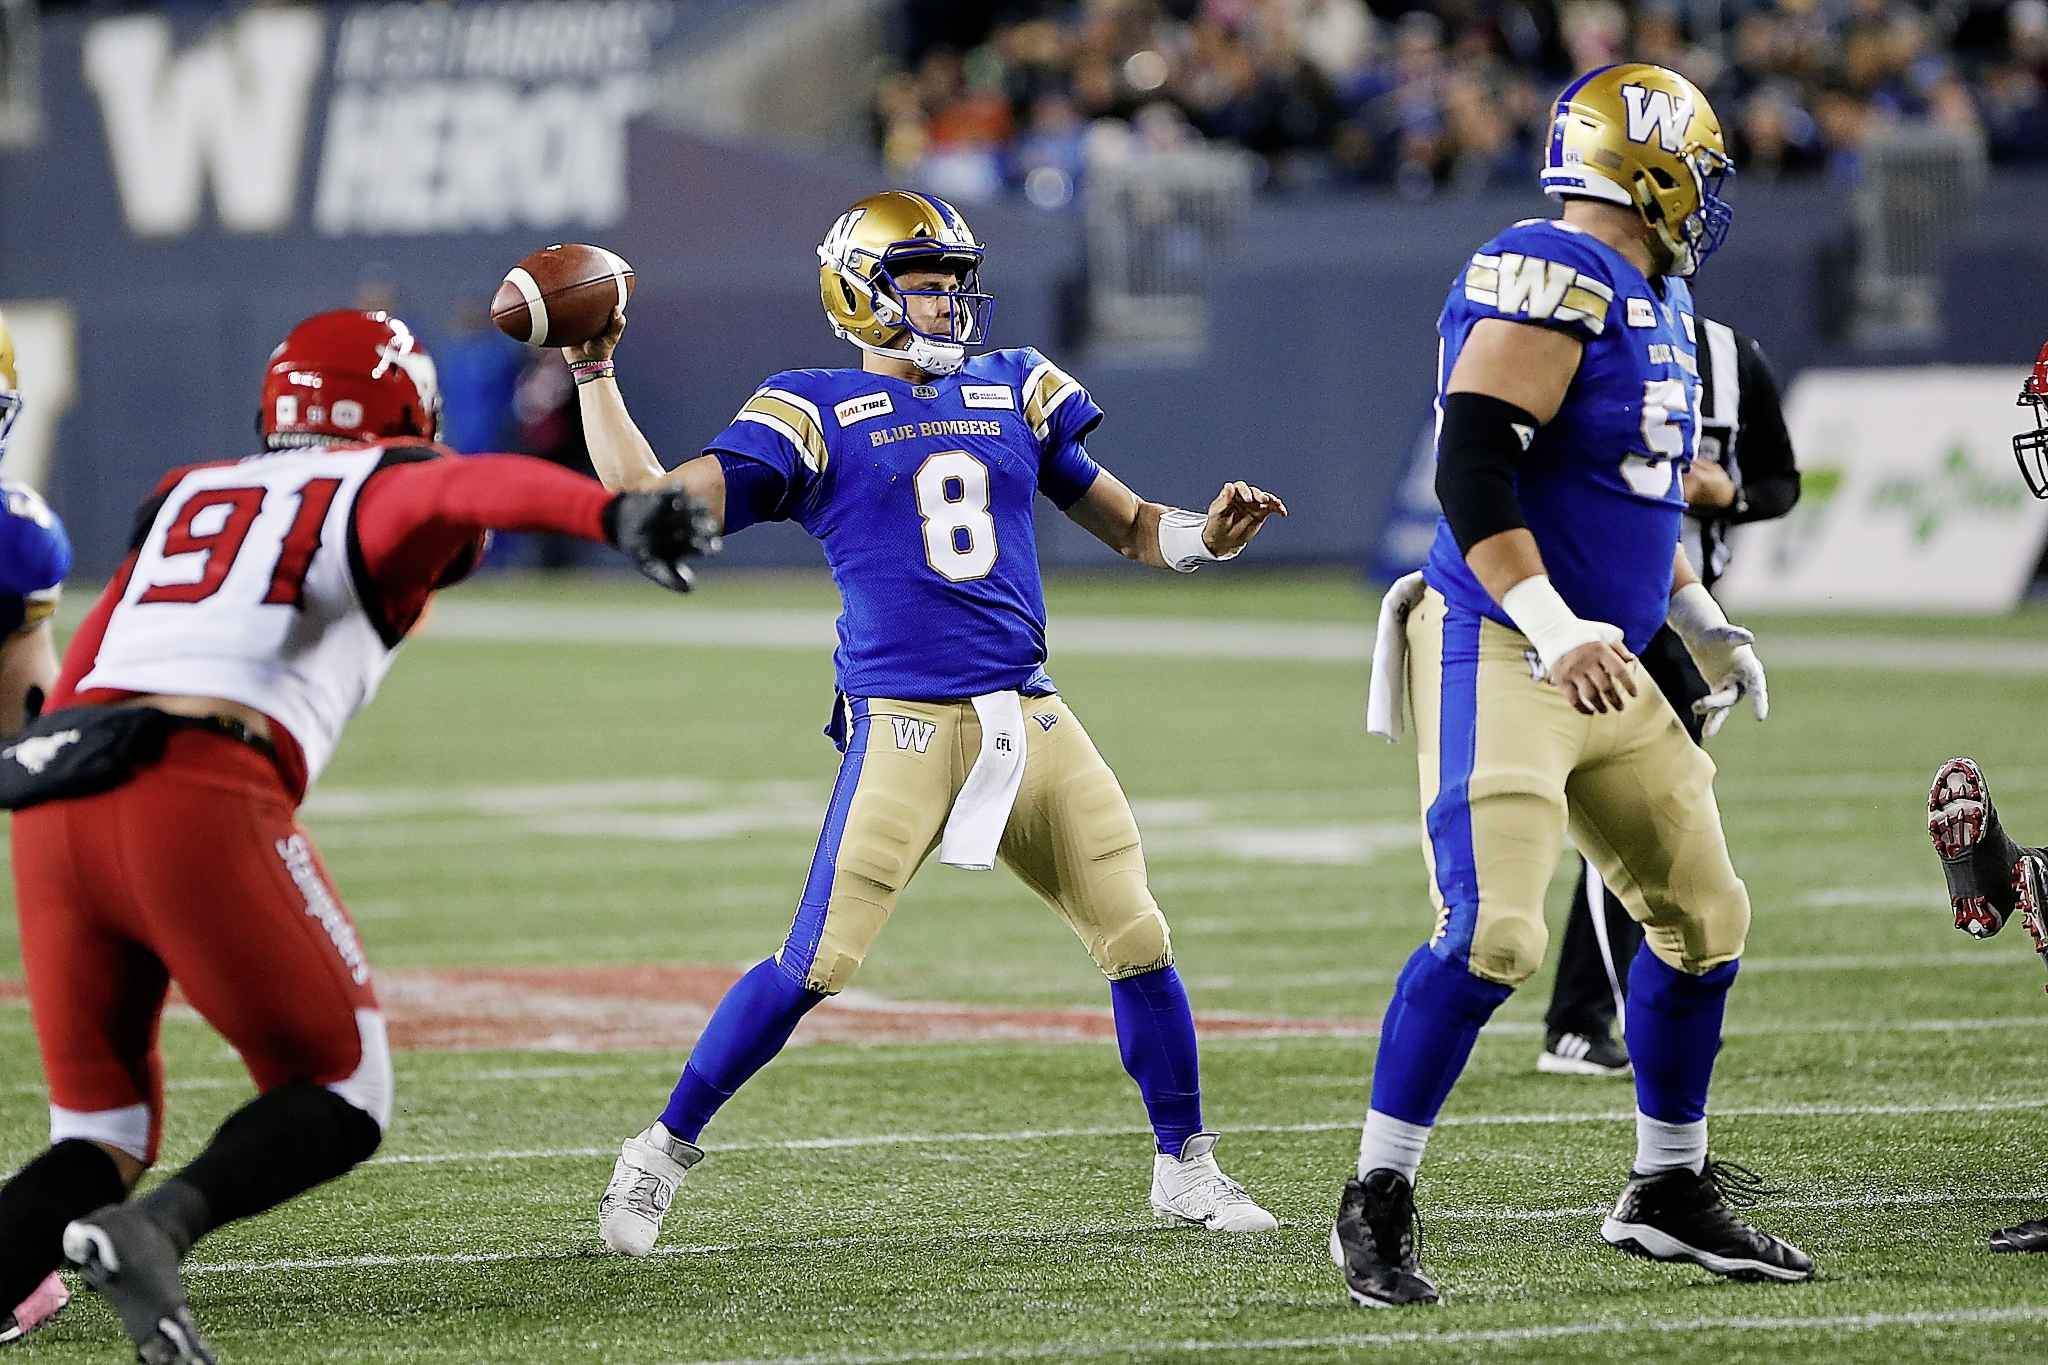 Winnipeg Blue Bombers quarterback Zach Collaros throws against the Calgary Stampeders during the first half in Winnipeg Friday.